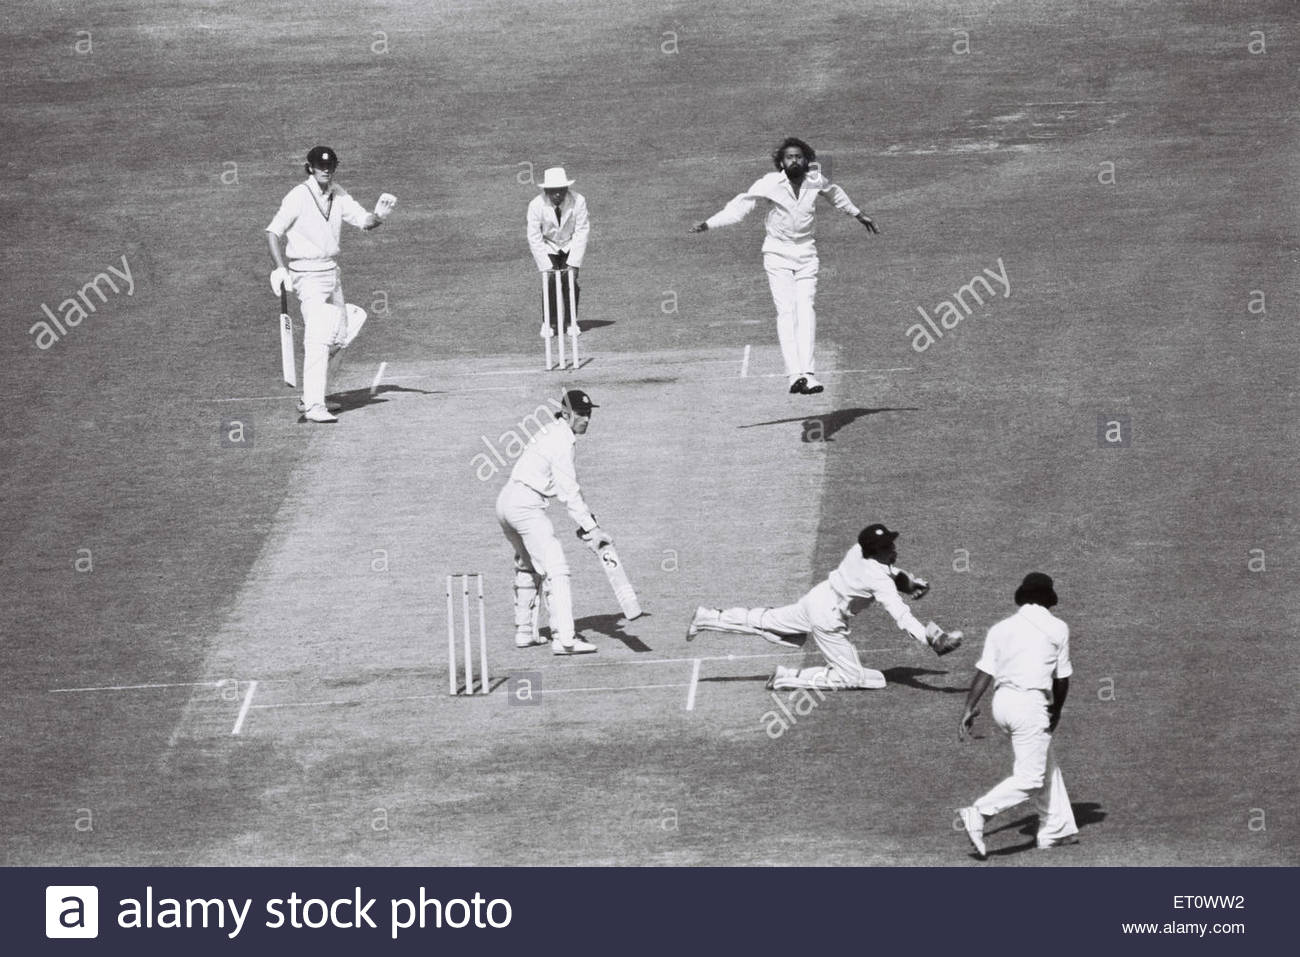 West Indies versus India ; cricket match   1979 ; Calcutta ; Kolkata ; India - Stock Image